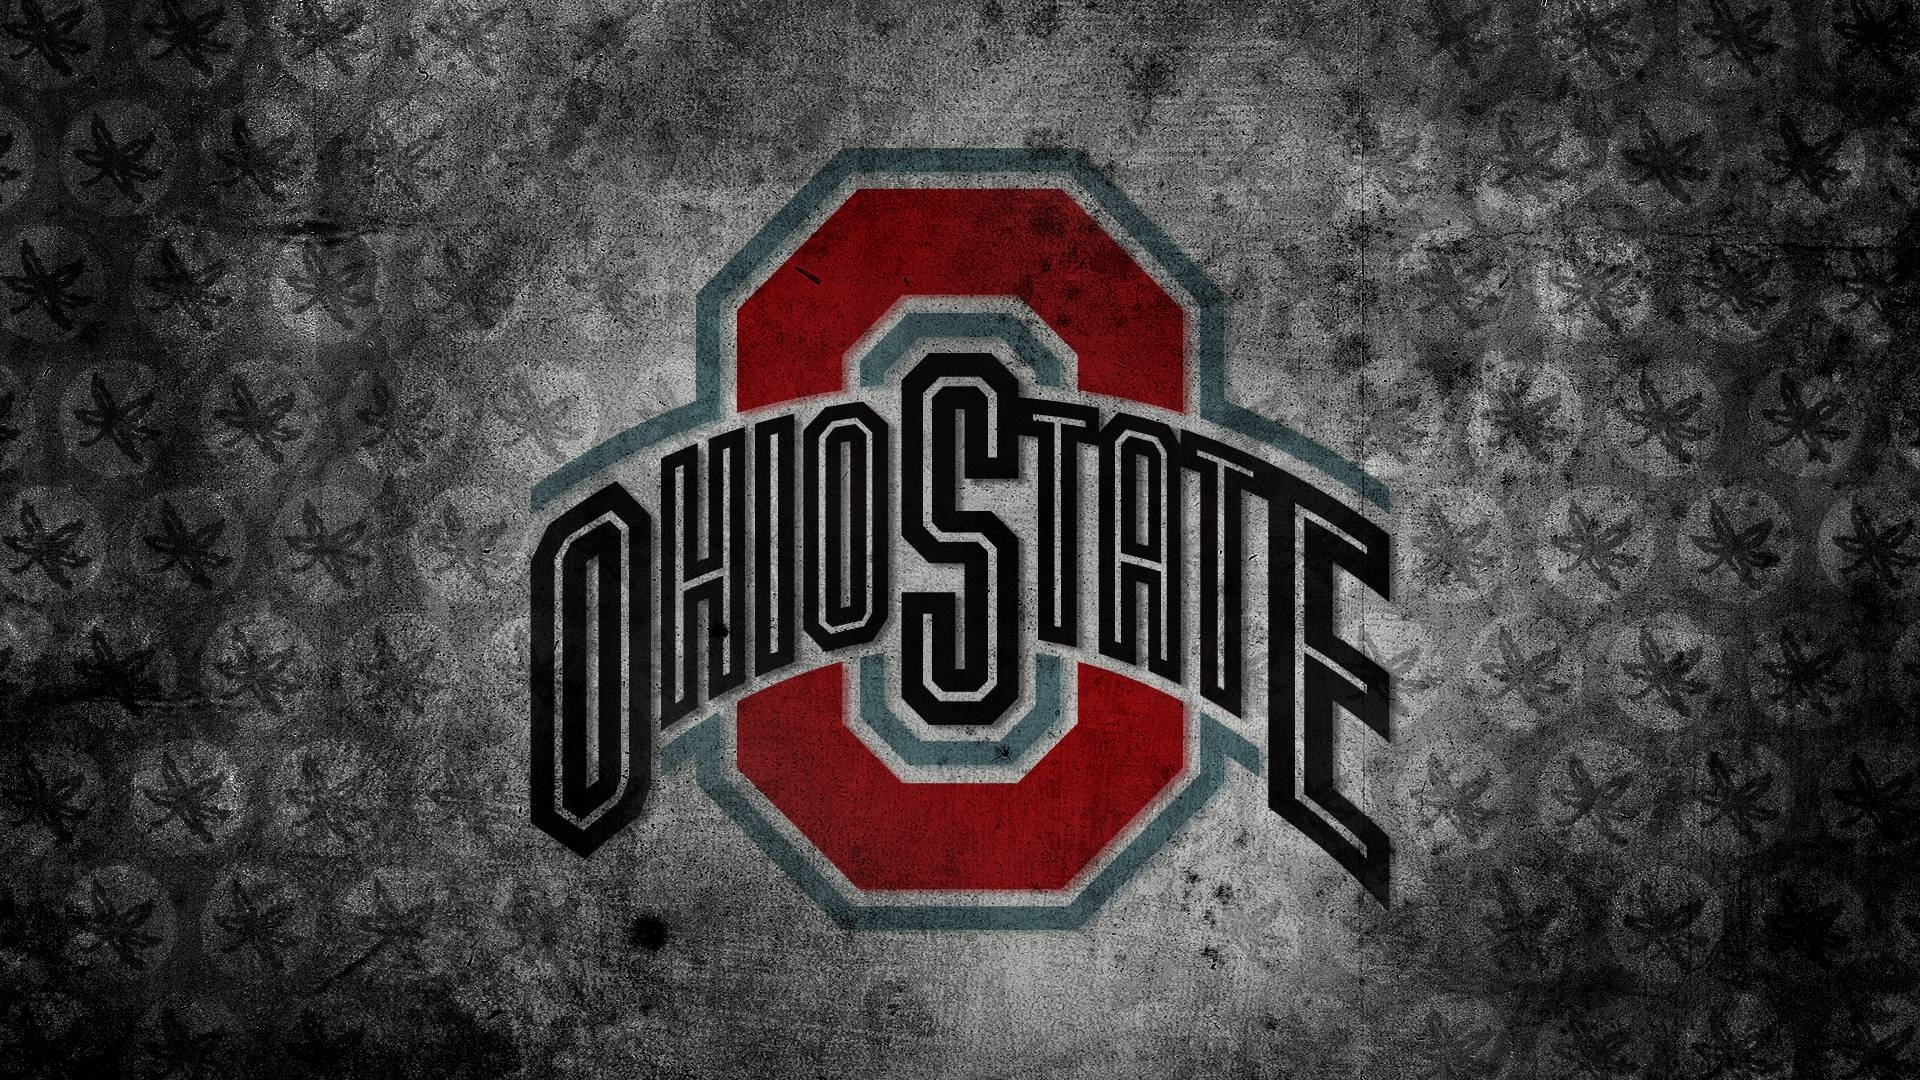 10 Best Ohio State Buckeyes Wallpaper FULL HD 1080p For PC Background